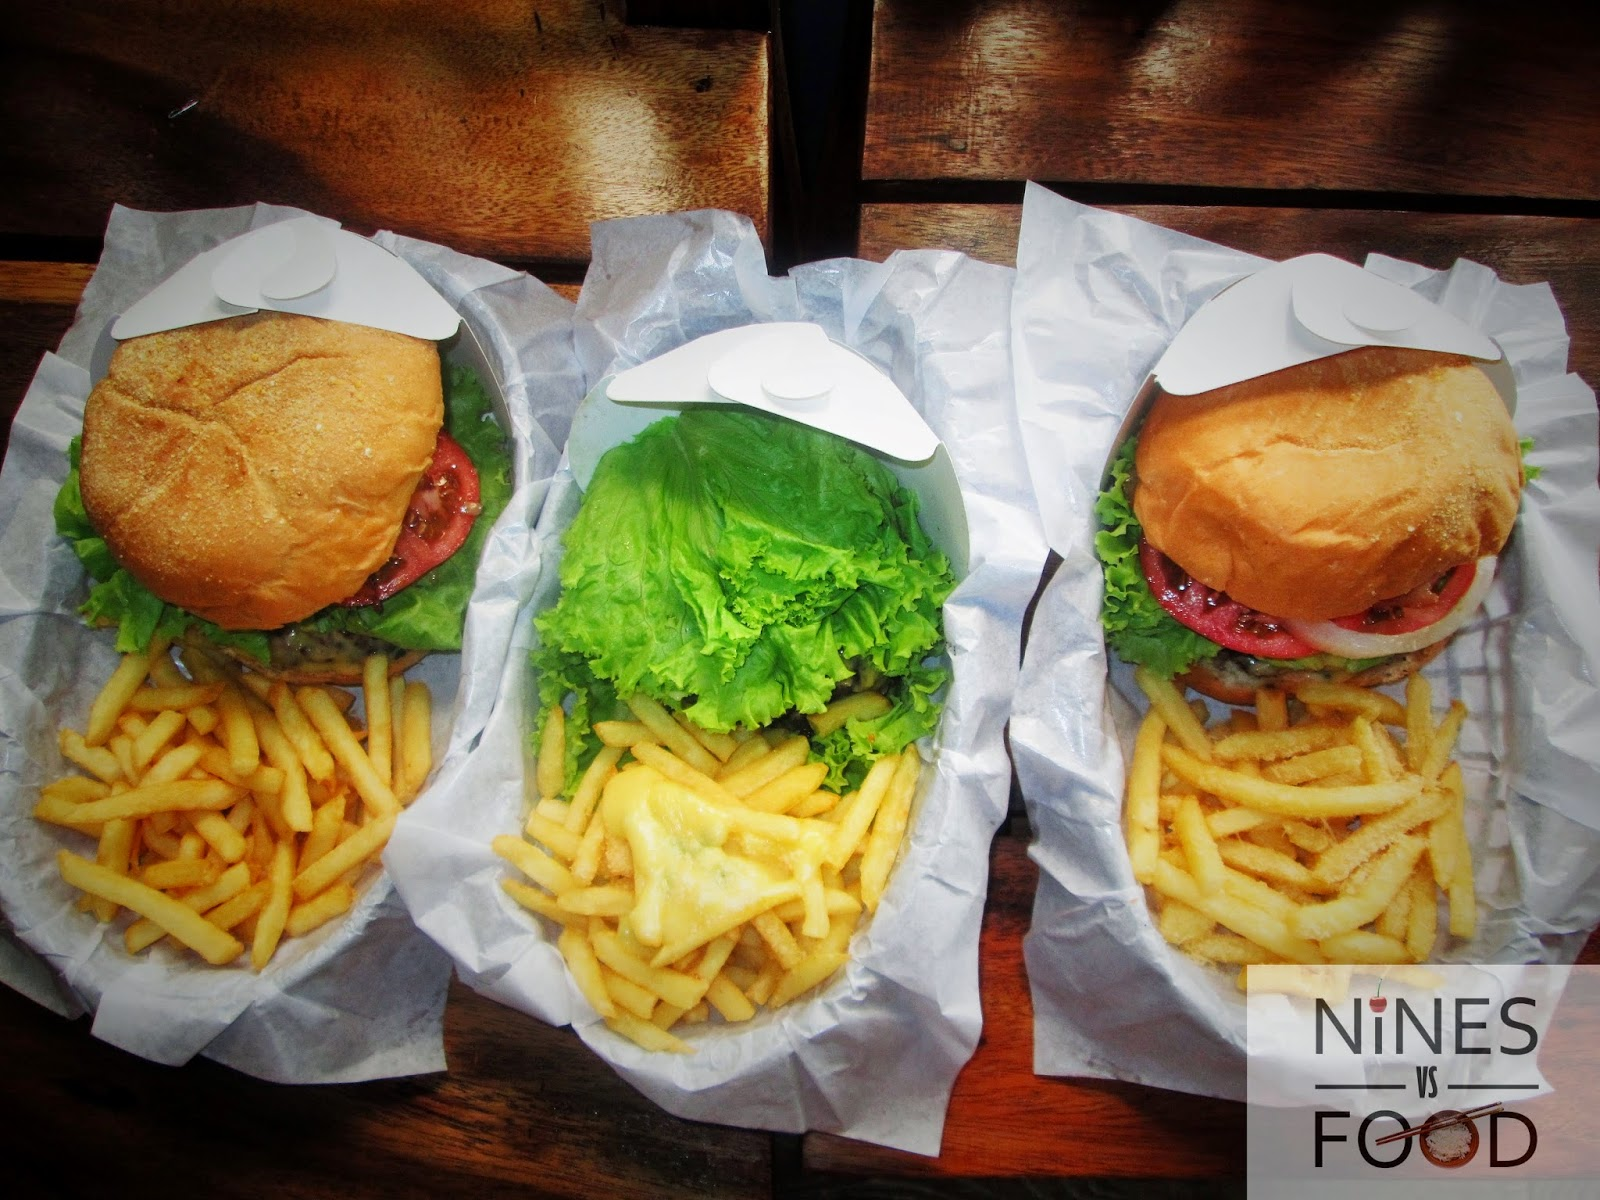 Nines vs. Food - Burger Culture Tomas Morato-11.jpg